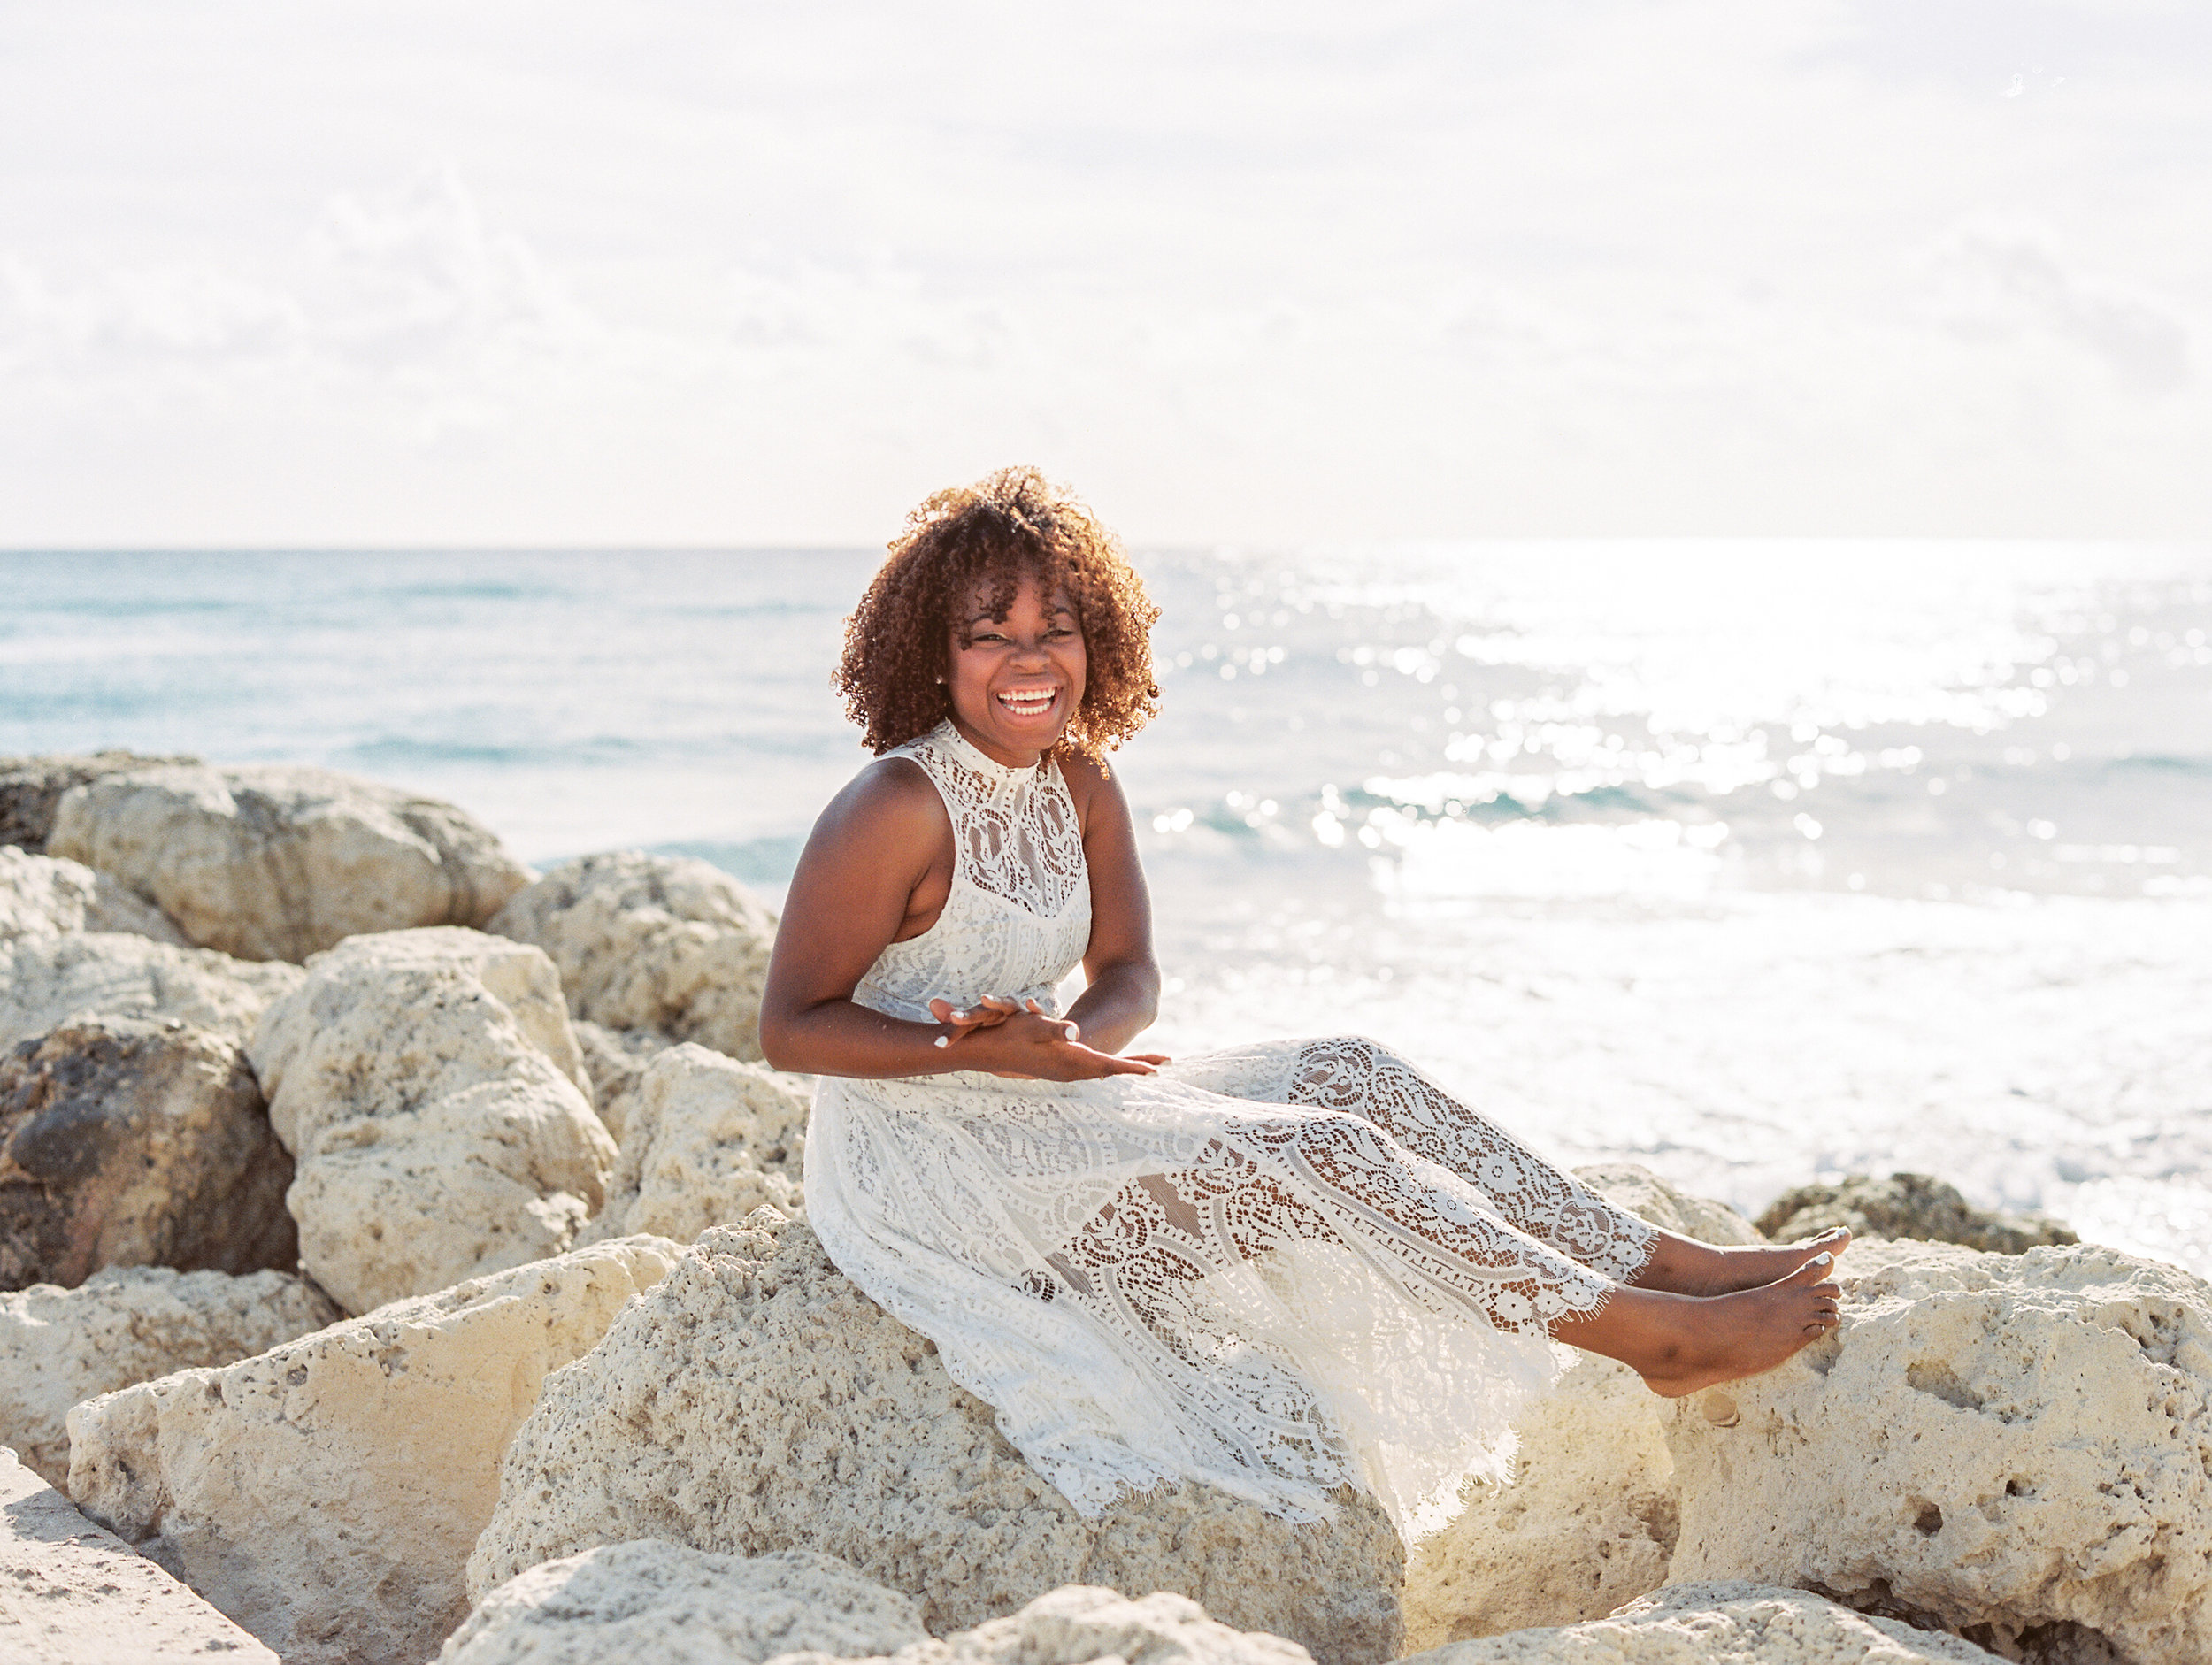 ANTHEA || BEACH PORTRAIT SESSION || WEST PALM BEACH, FL